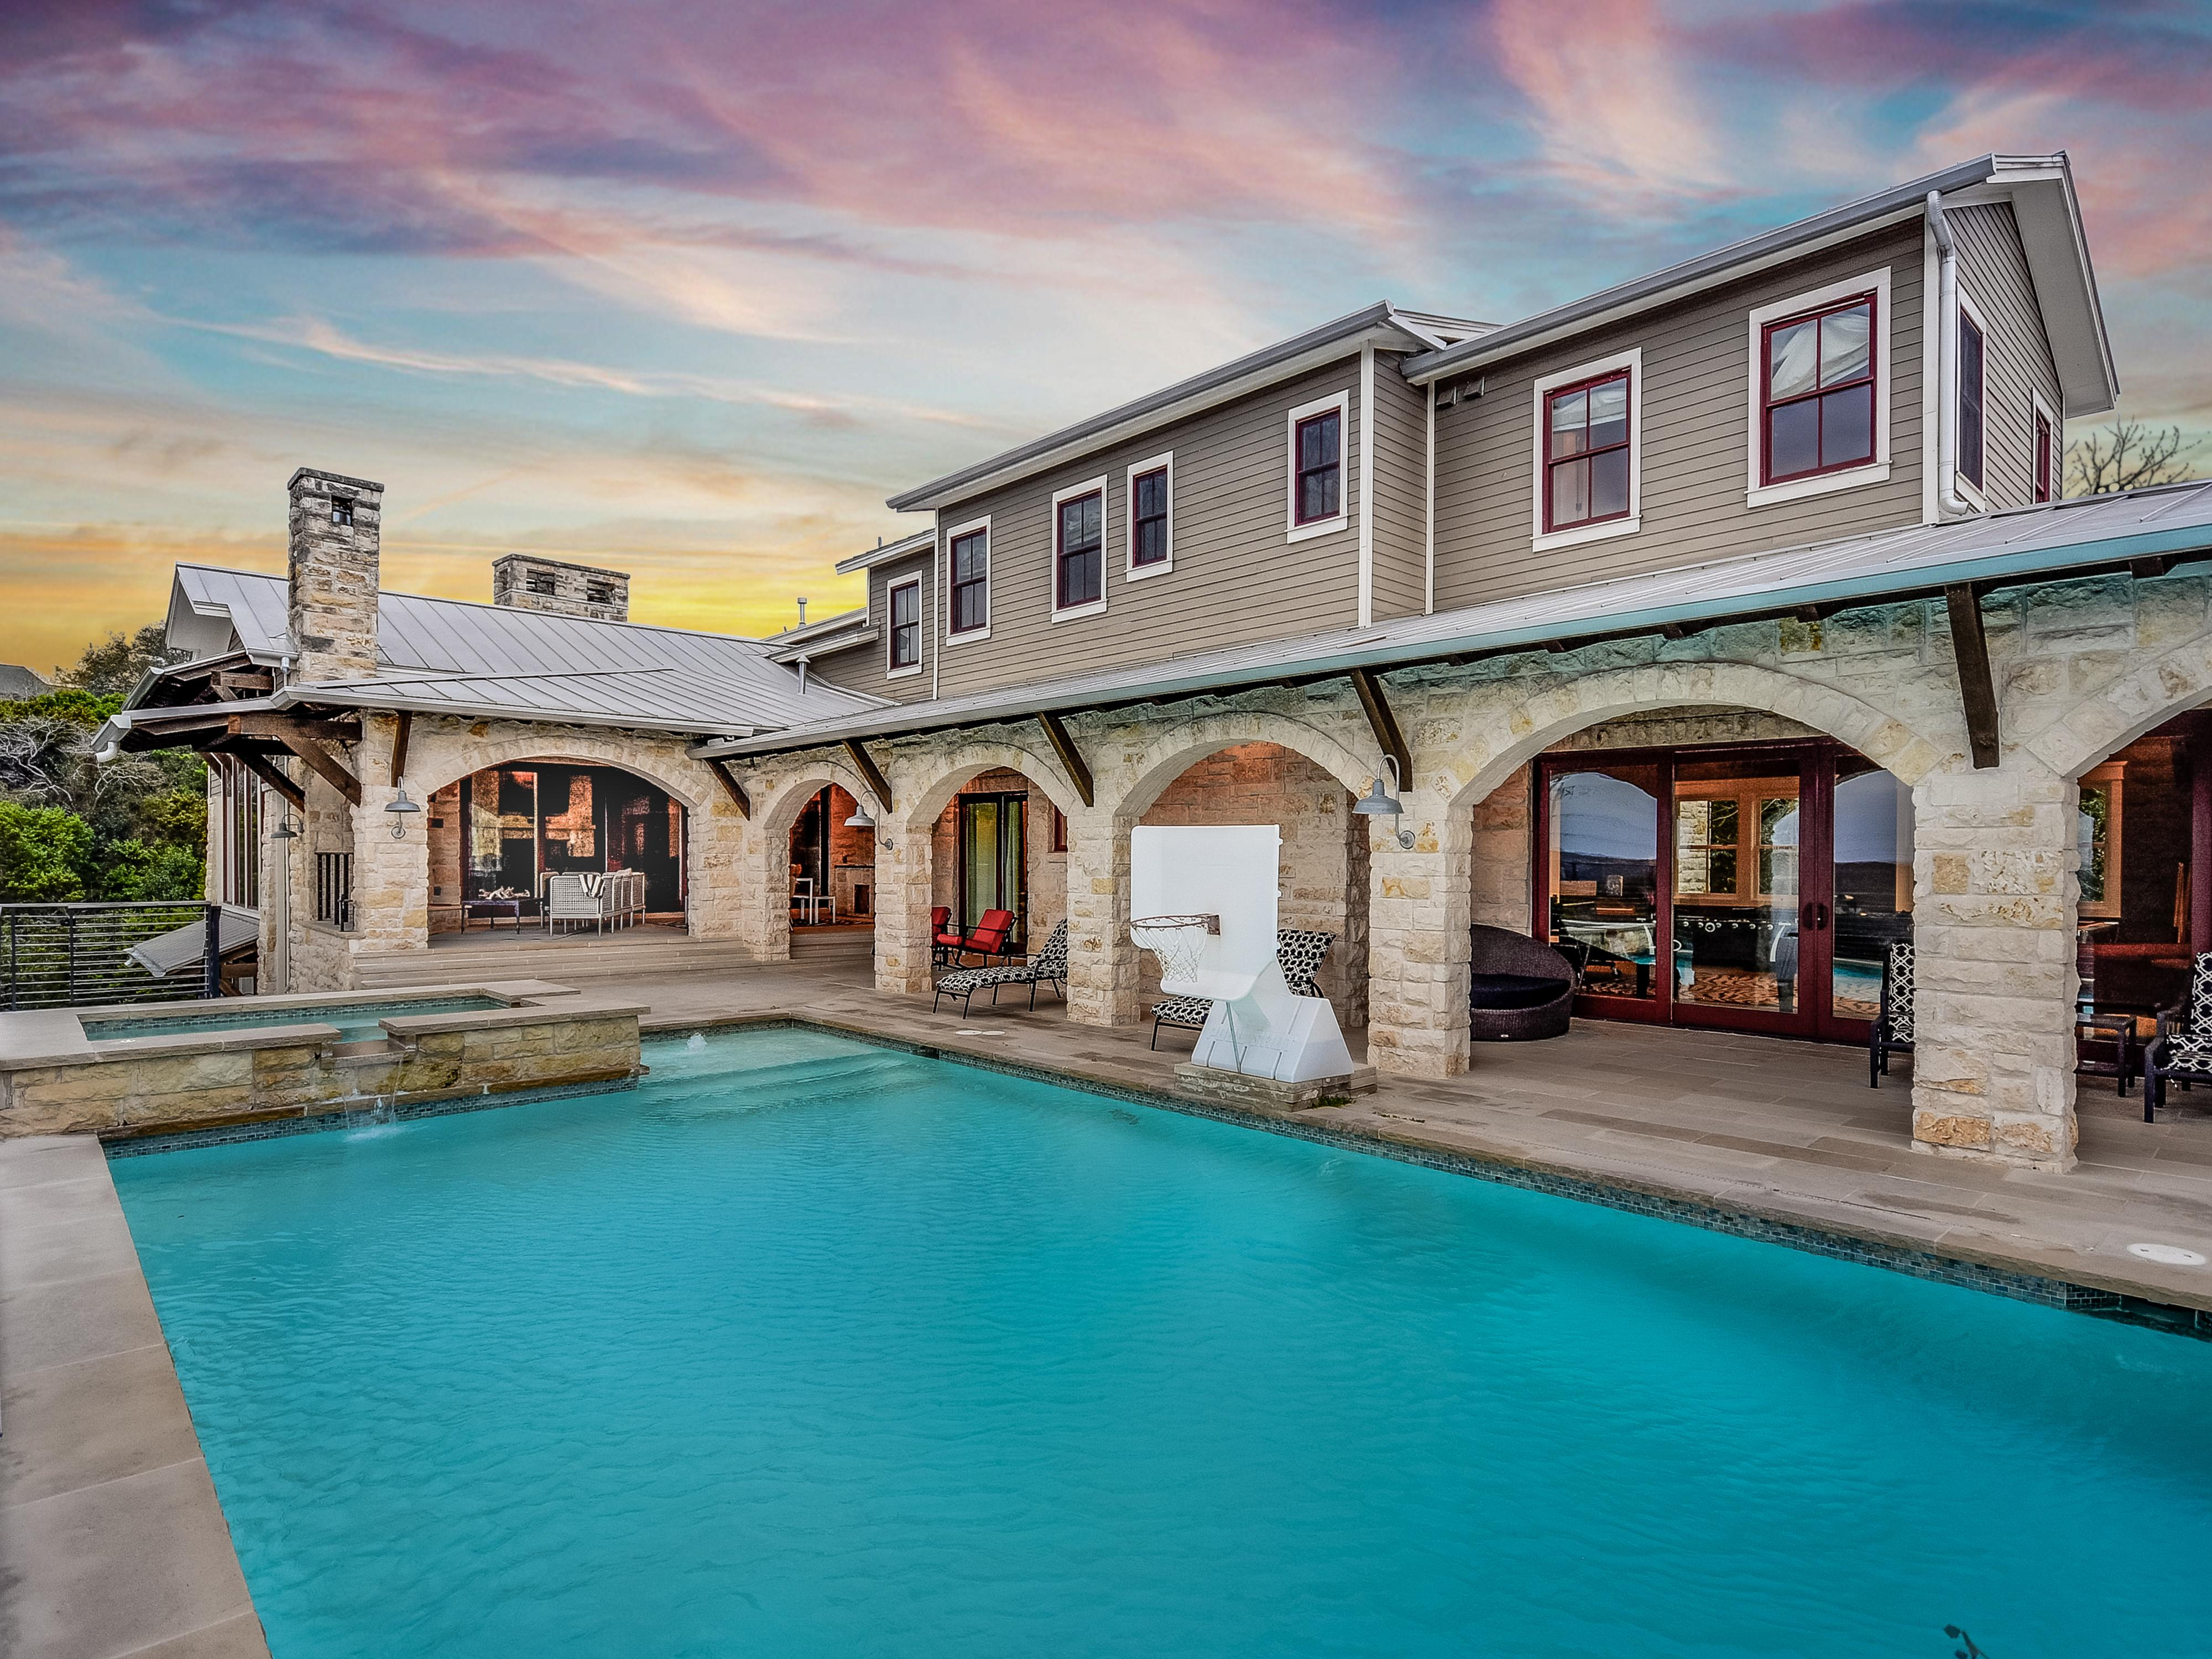 The wonderful pool which is the best part of the house. Enjoy the outdoor living area while grilling, swimming, and taking in the Texas Hill Country View!